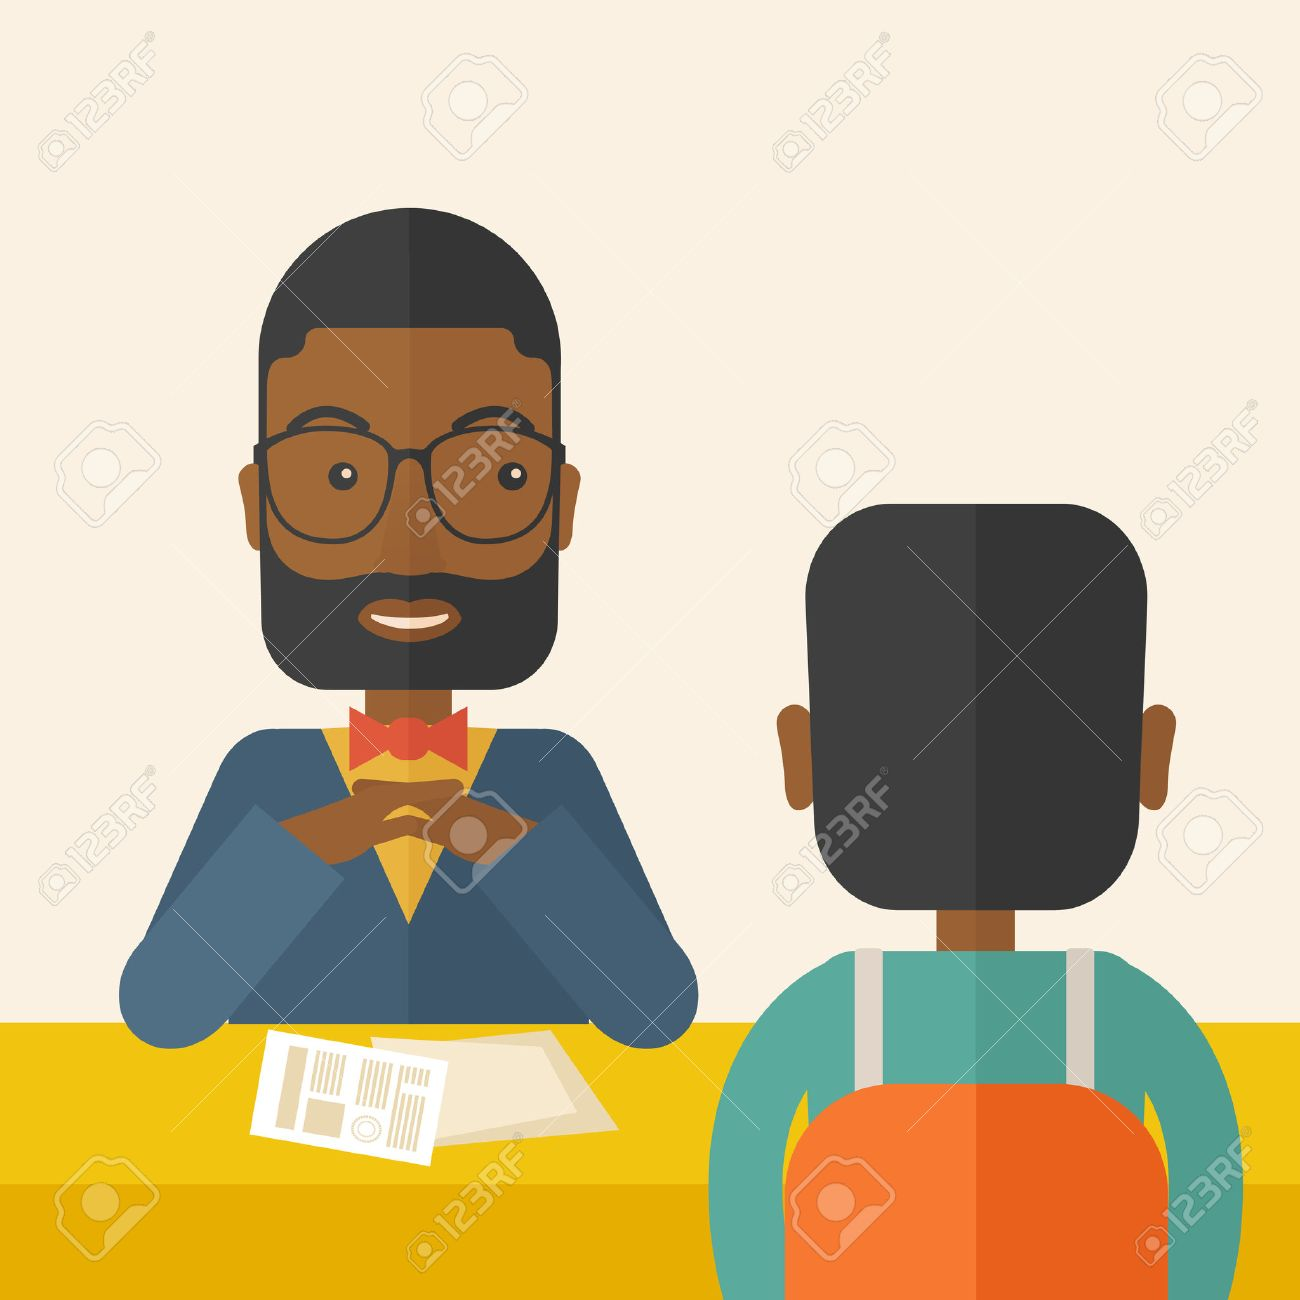 a smiling black human resource manager interviewed the applicant a smiling black human resource manager interviewed the applicant his curriculum vitae for the job